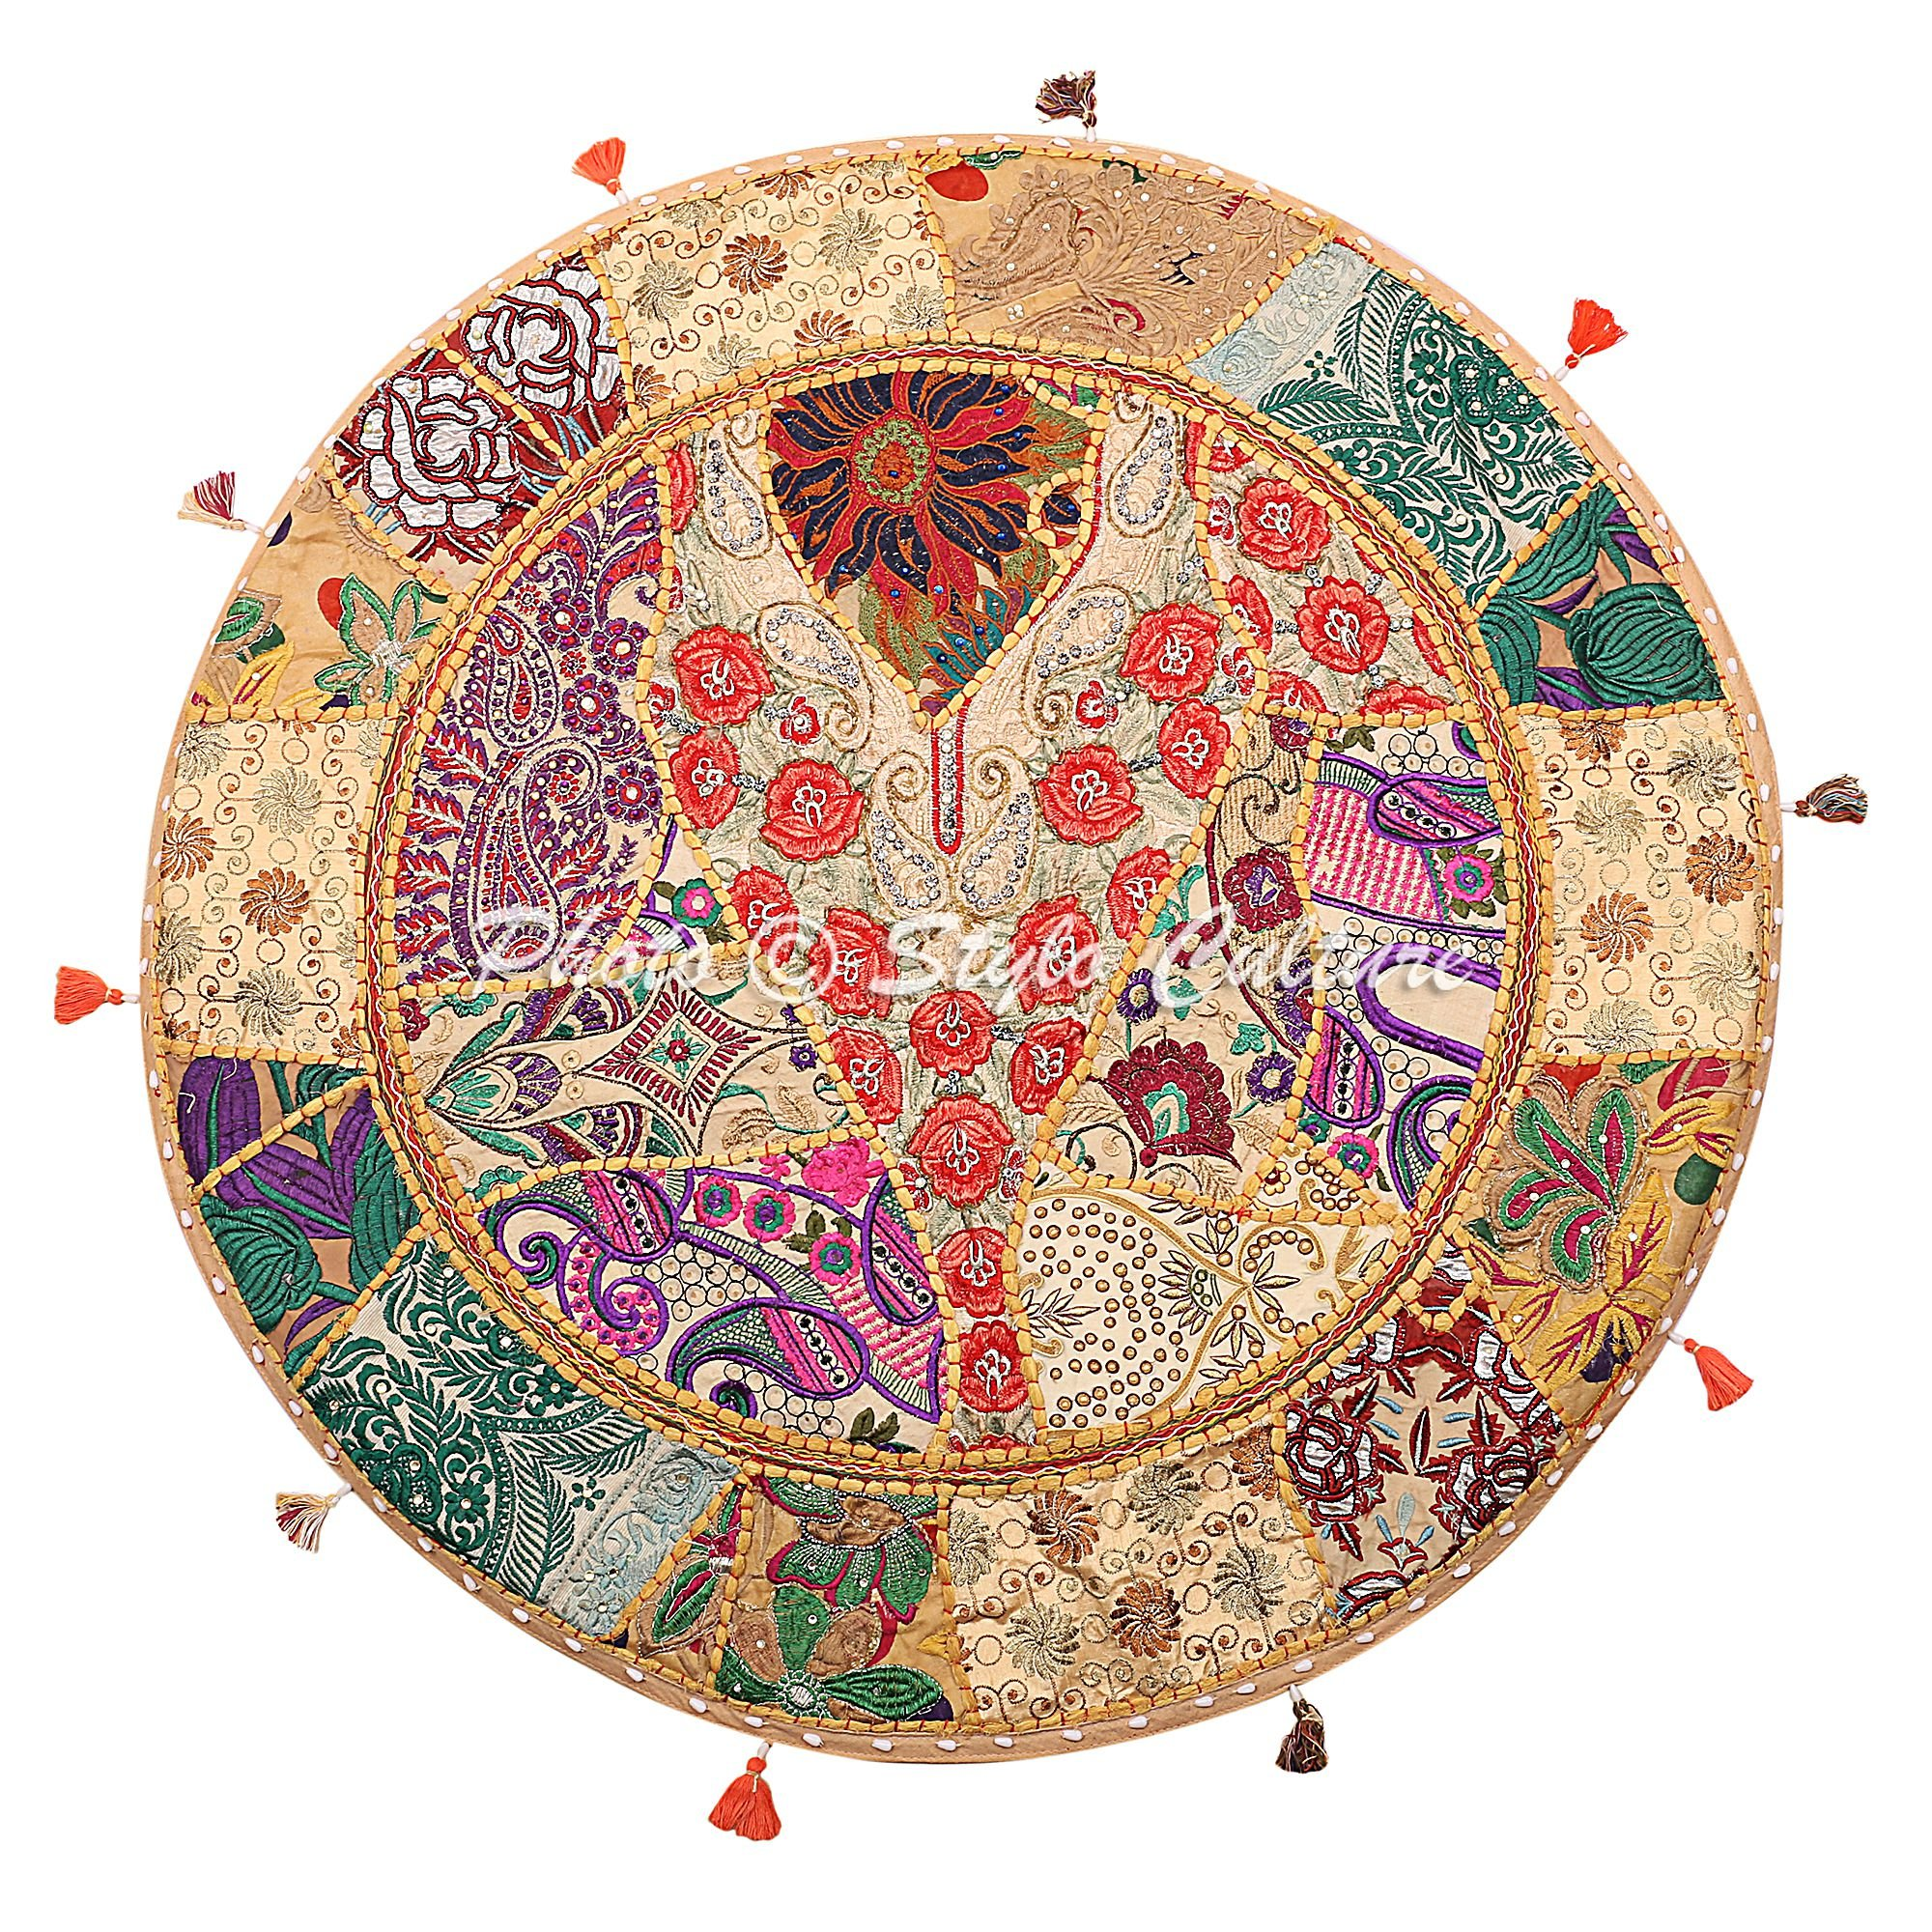 Stylo Culture Round Cotton Indian Floor Cushion Cover Vintage Embroidered Patchwork Beige 32'' Hassock Floor Pillow Cover Extra Large